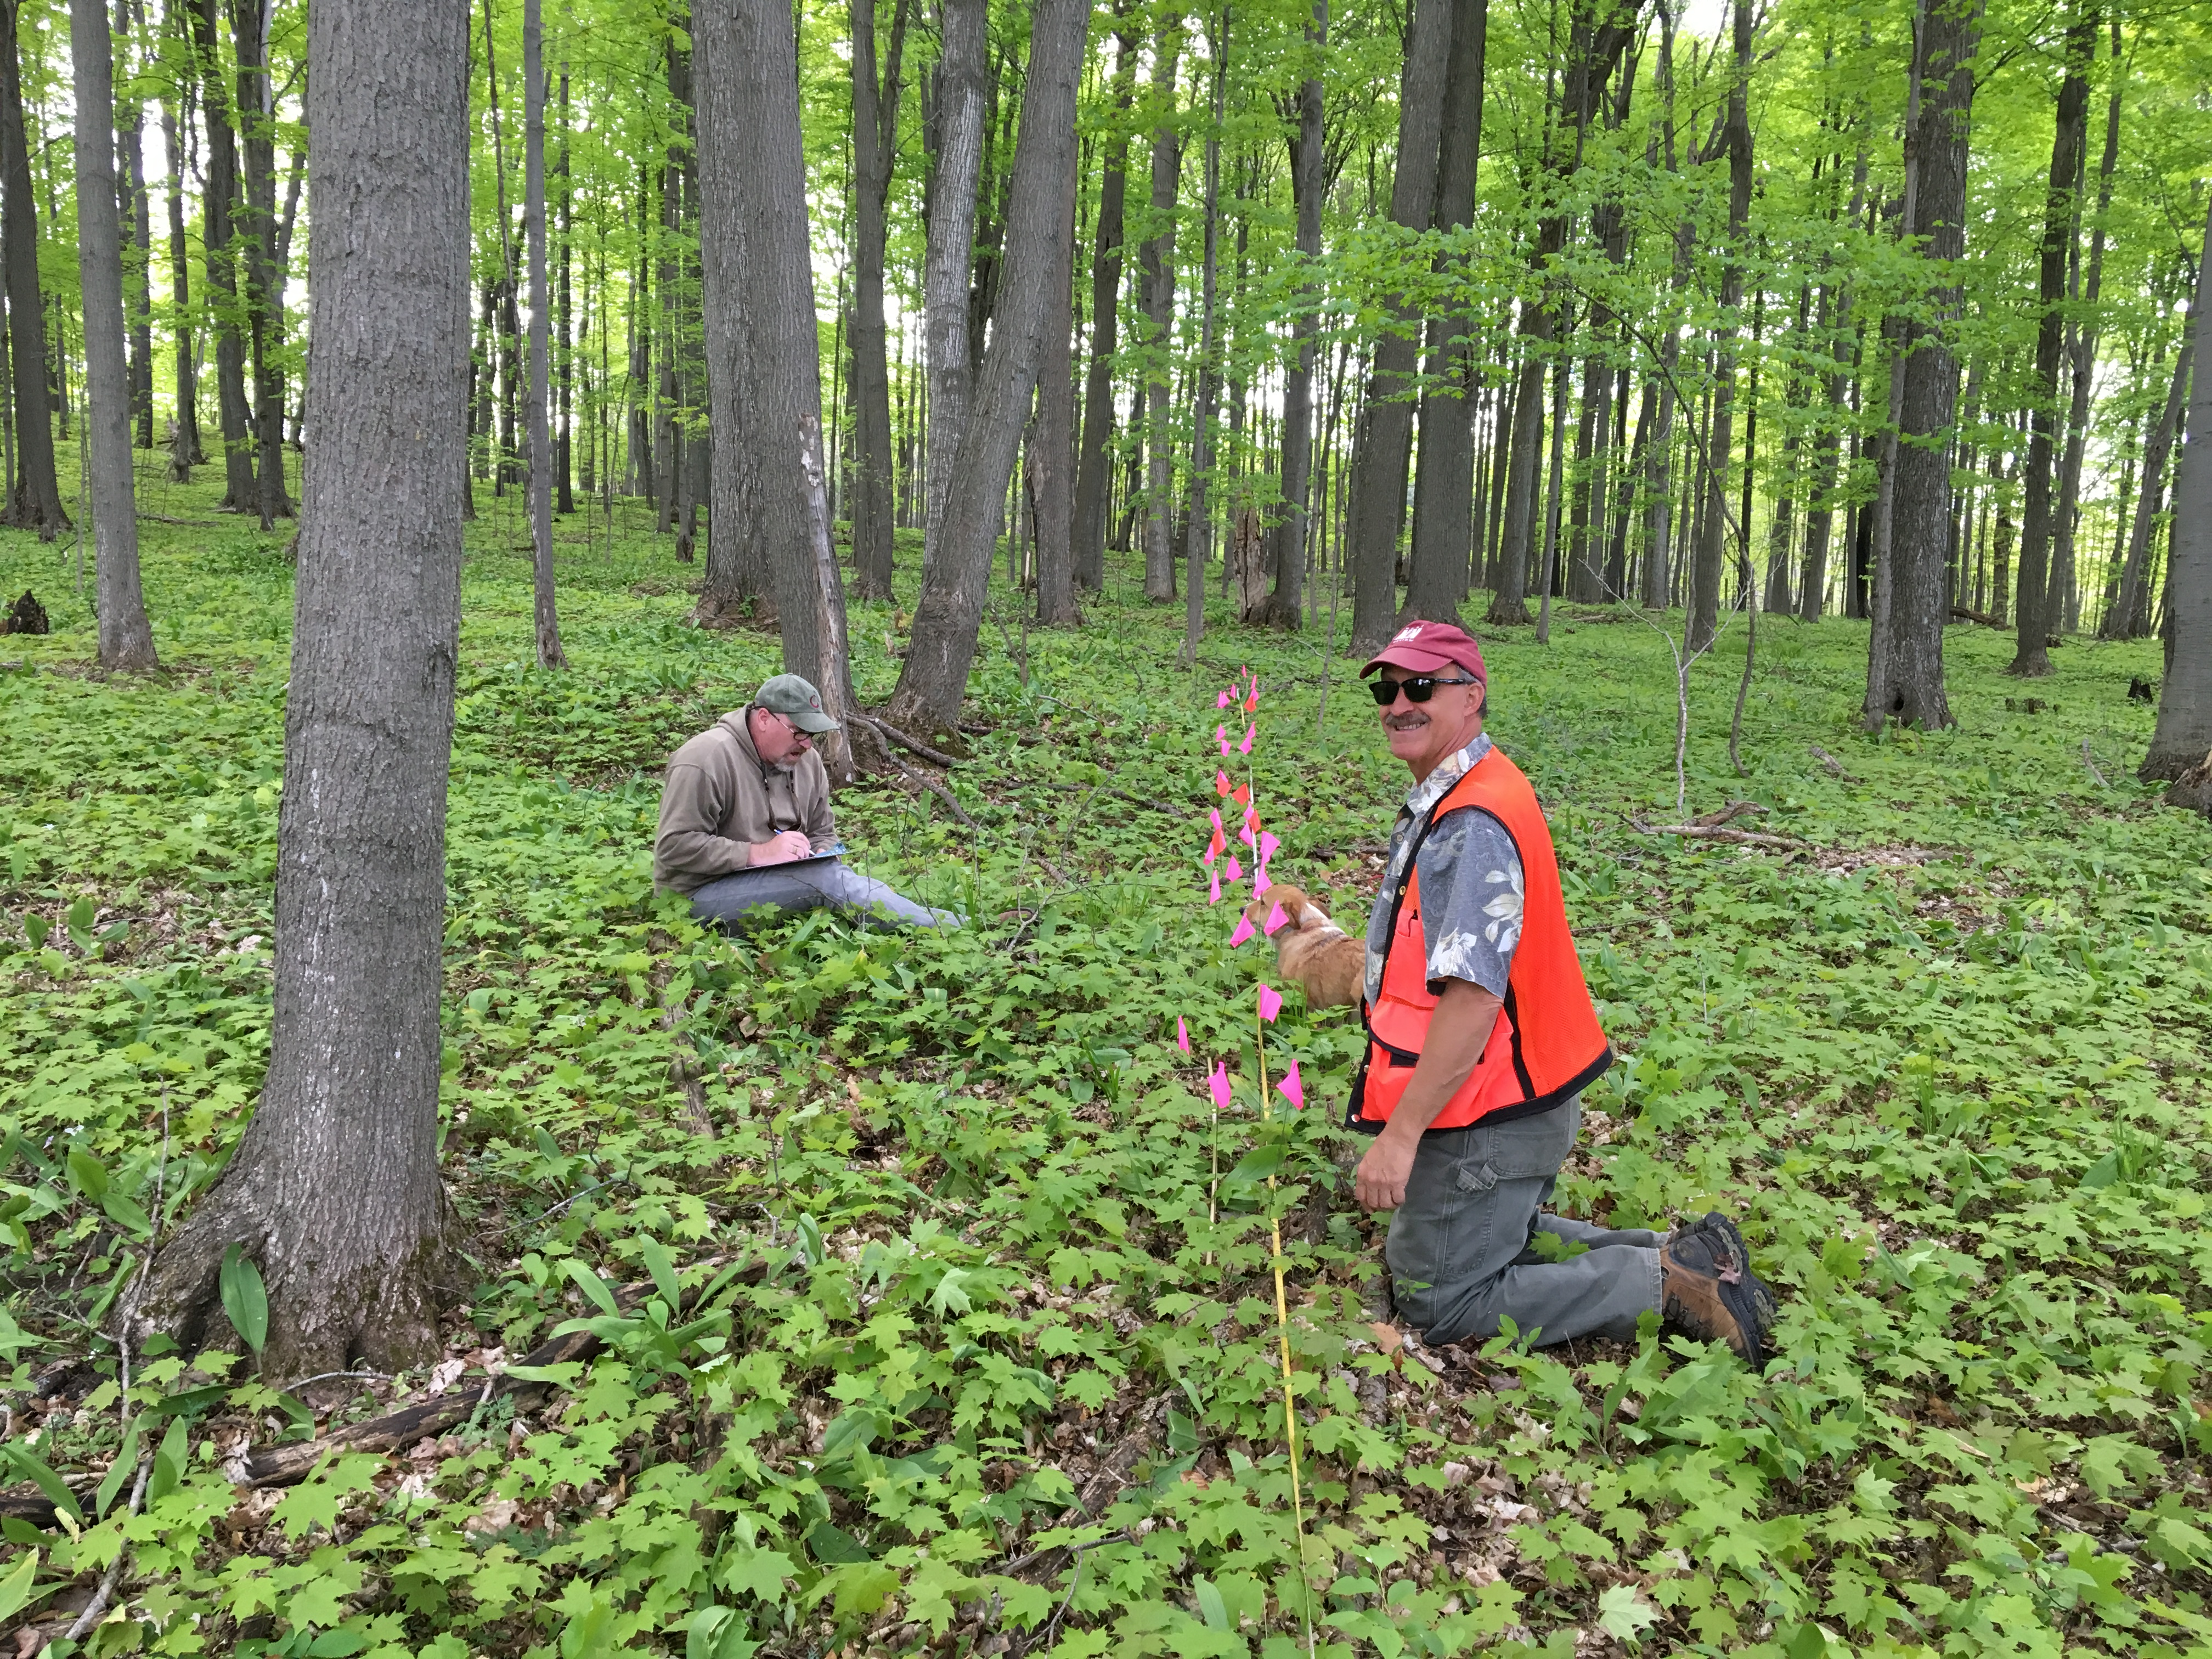 Jim Chamberlain reviews placement of study plots where ramps have been harvested for commercial purposes in northwest Lower Michigan